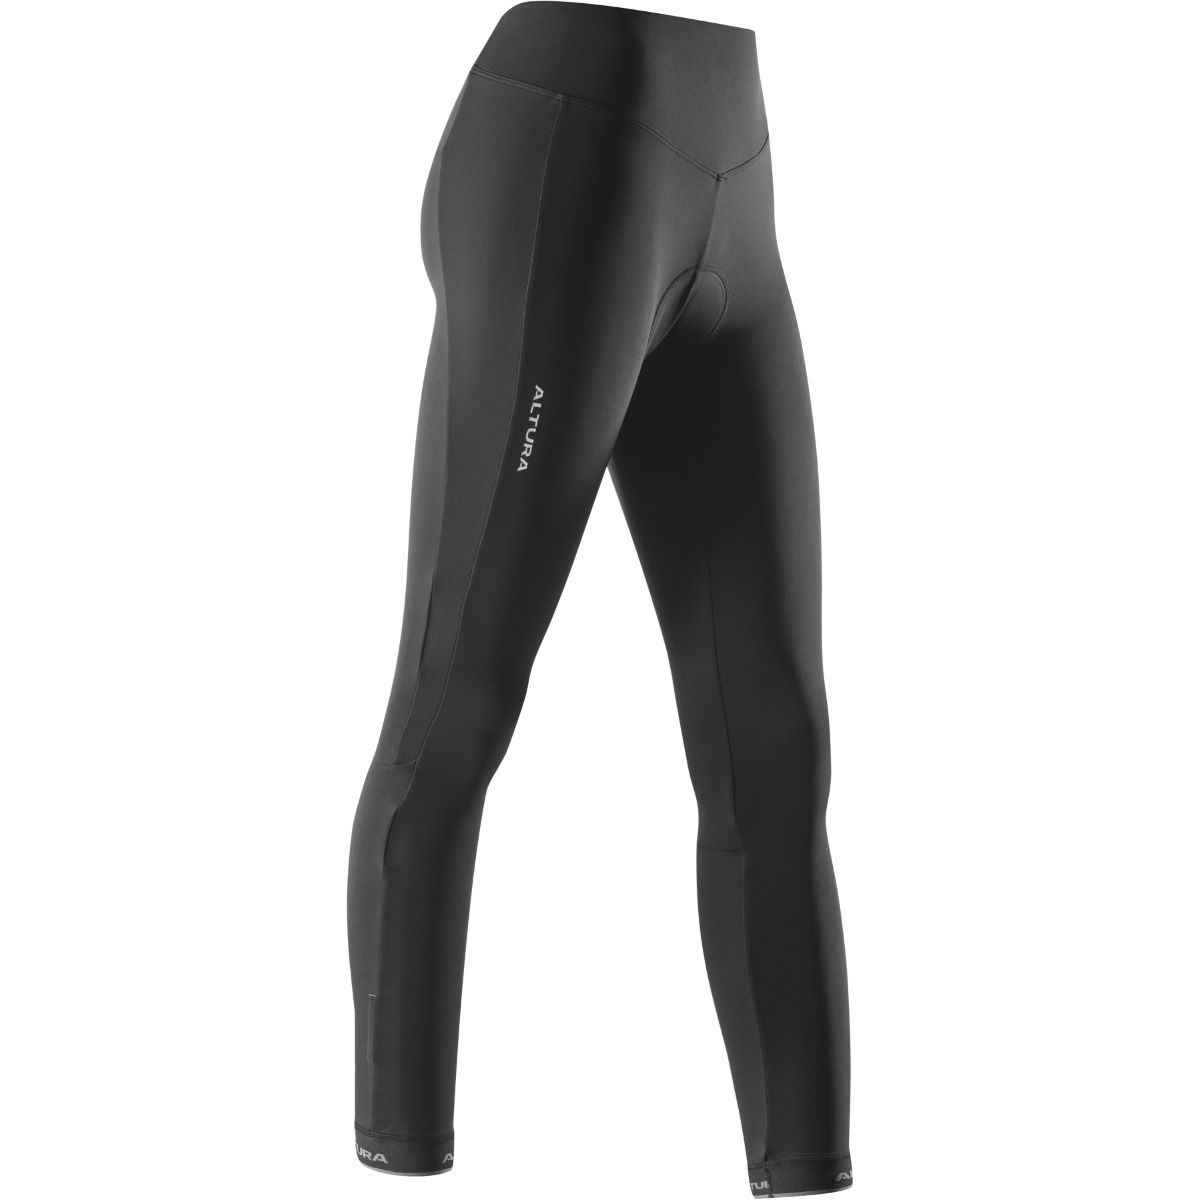 Altura Women's Progel 2 Waist Tights - 12 Black | Cycle Tights